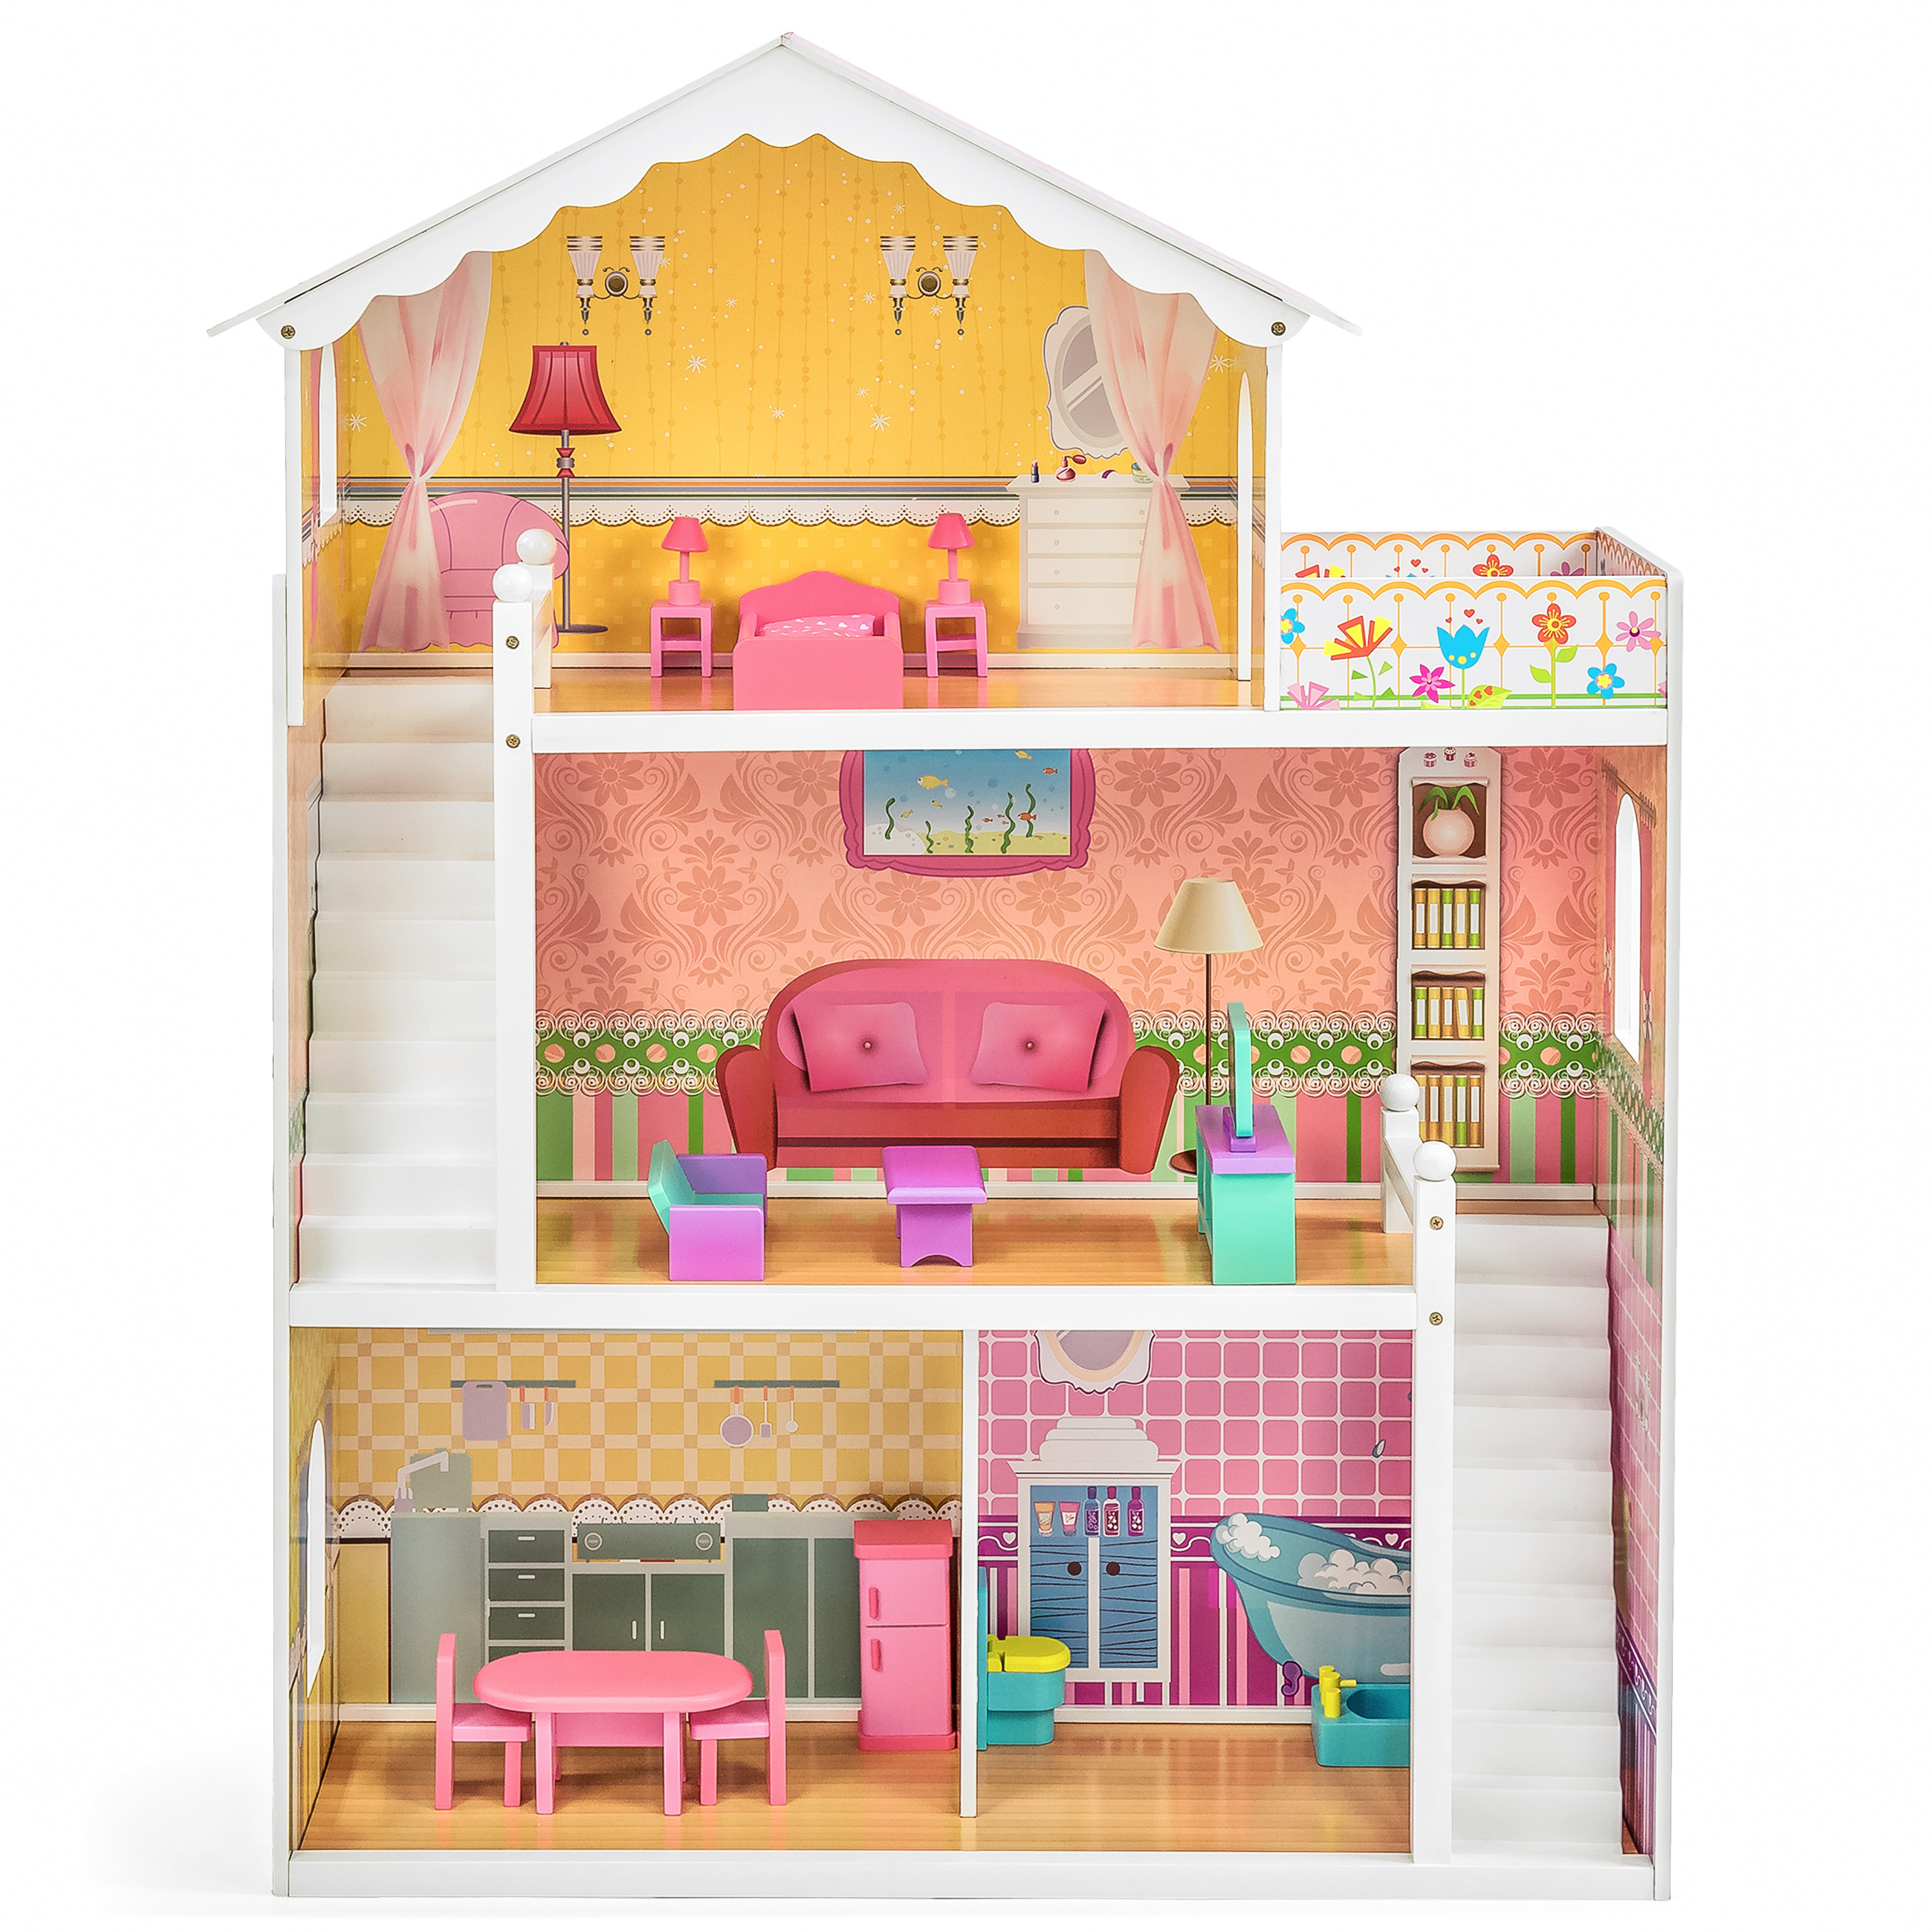 wooden barbie doll house furniture. best choice products large childrens wooden dollhouse fits barbie doll house pink with 17 pieces of furniture w